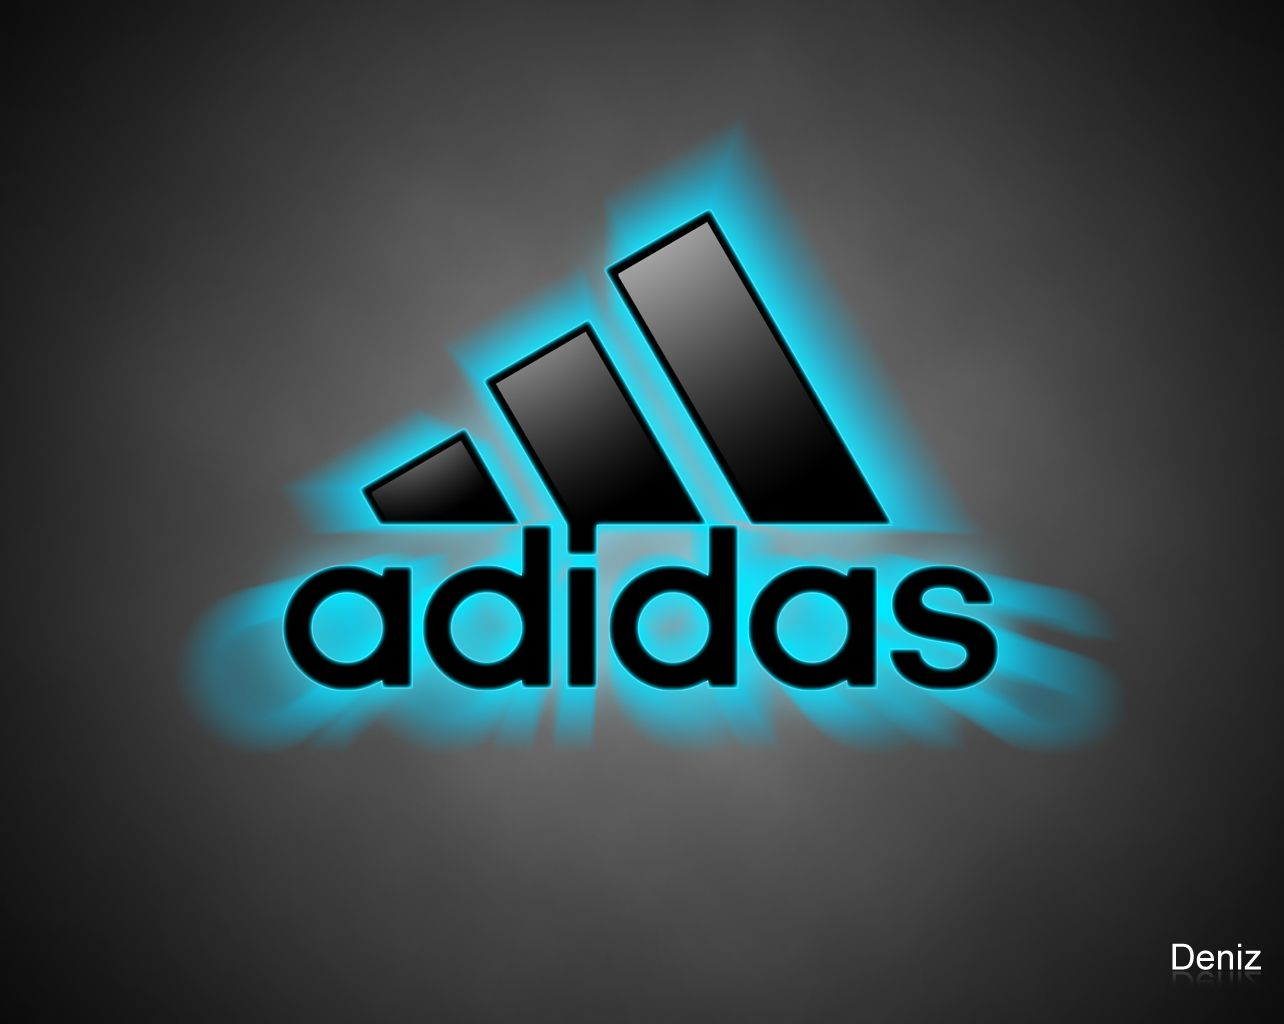 adidas-wallpaper-for-iphone_Adidas-Wallpaper-for-Iphone-5.